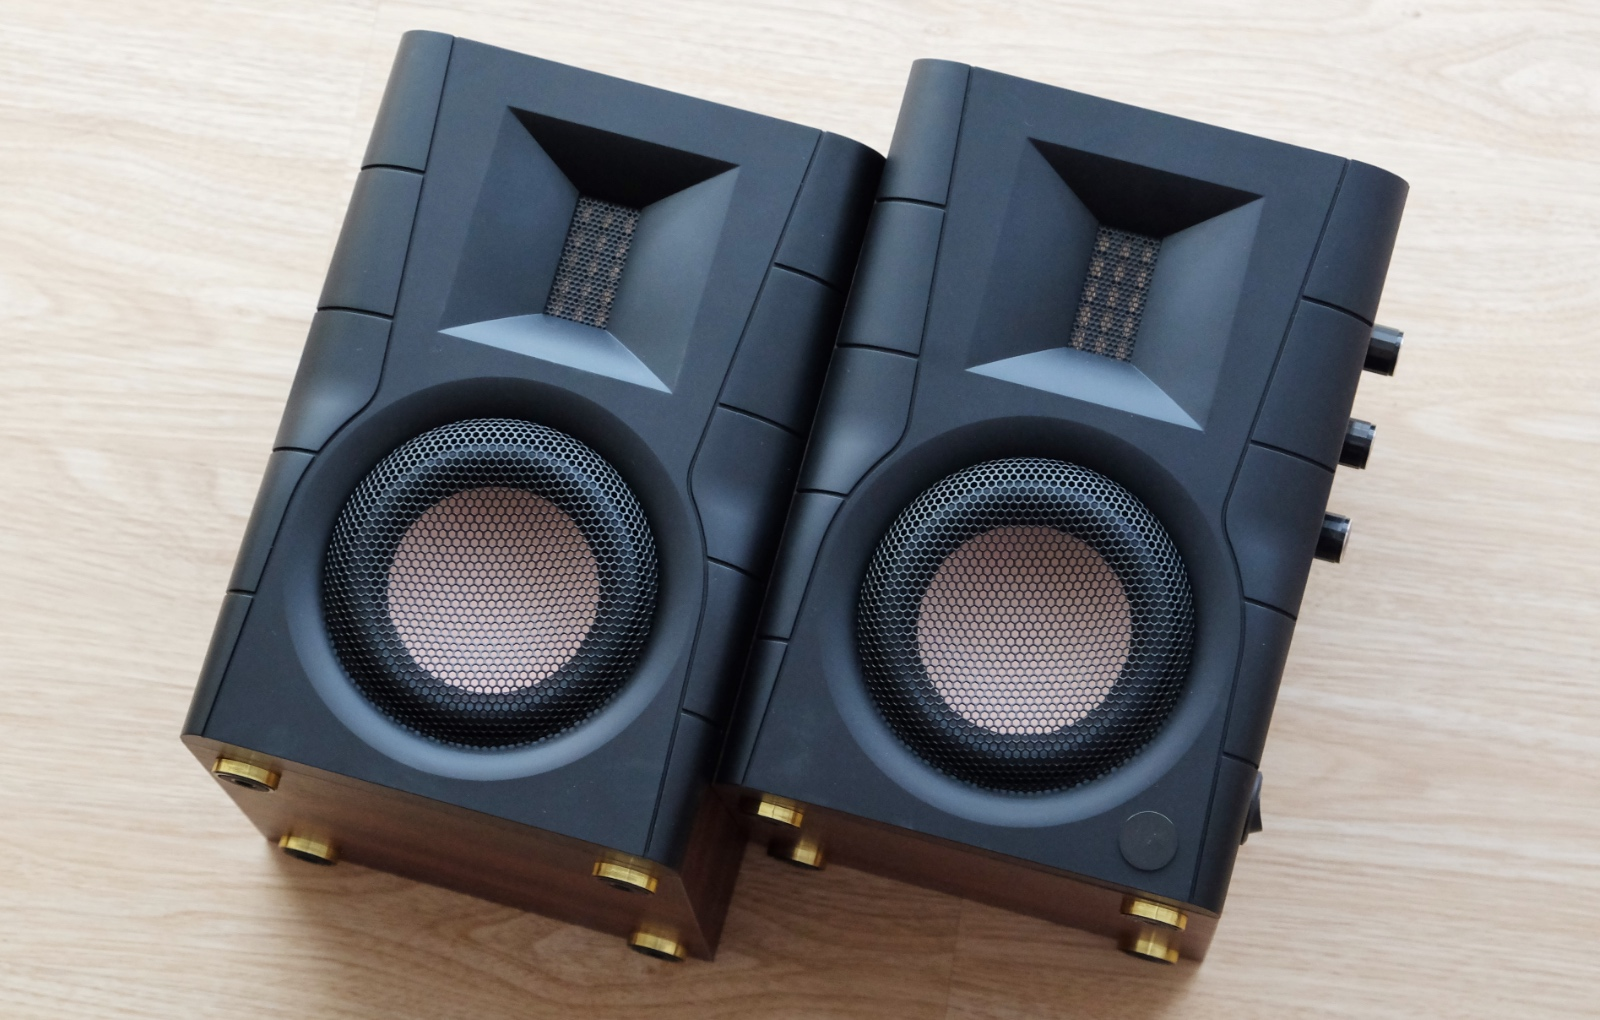 The D100 is one of Swans' most affordable speakers.